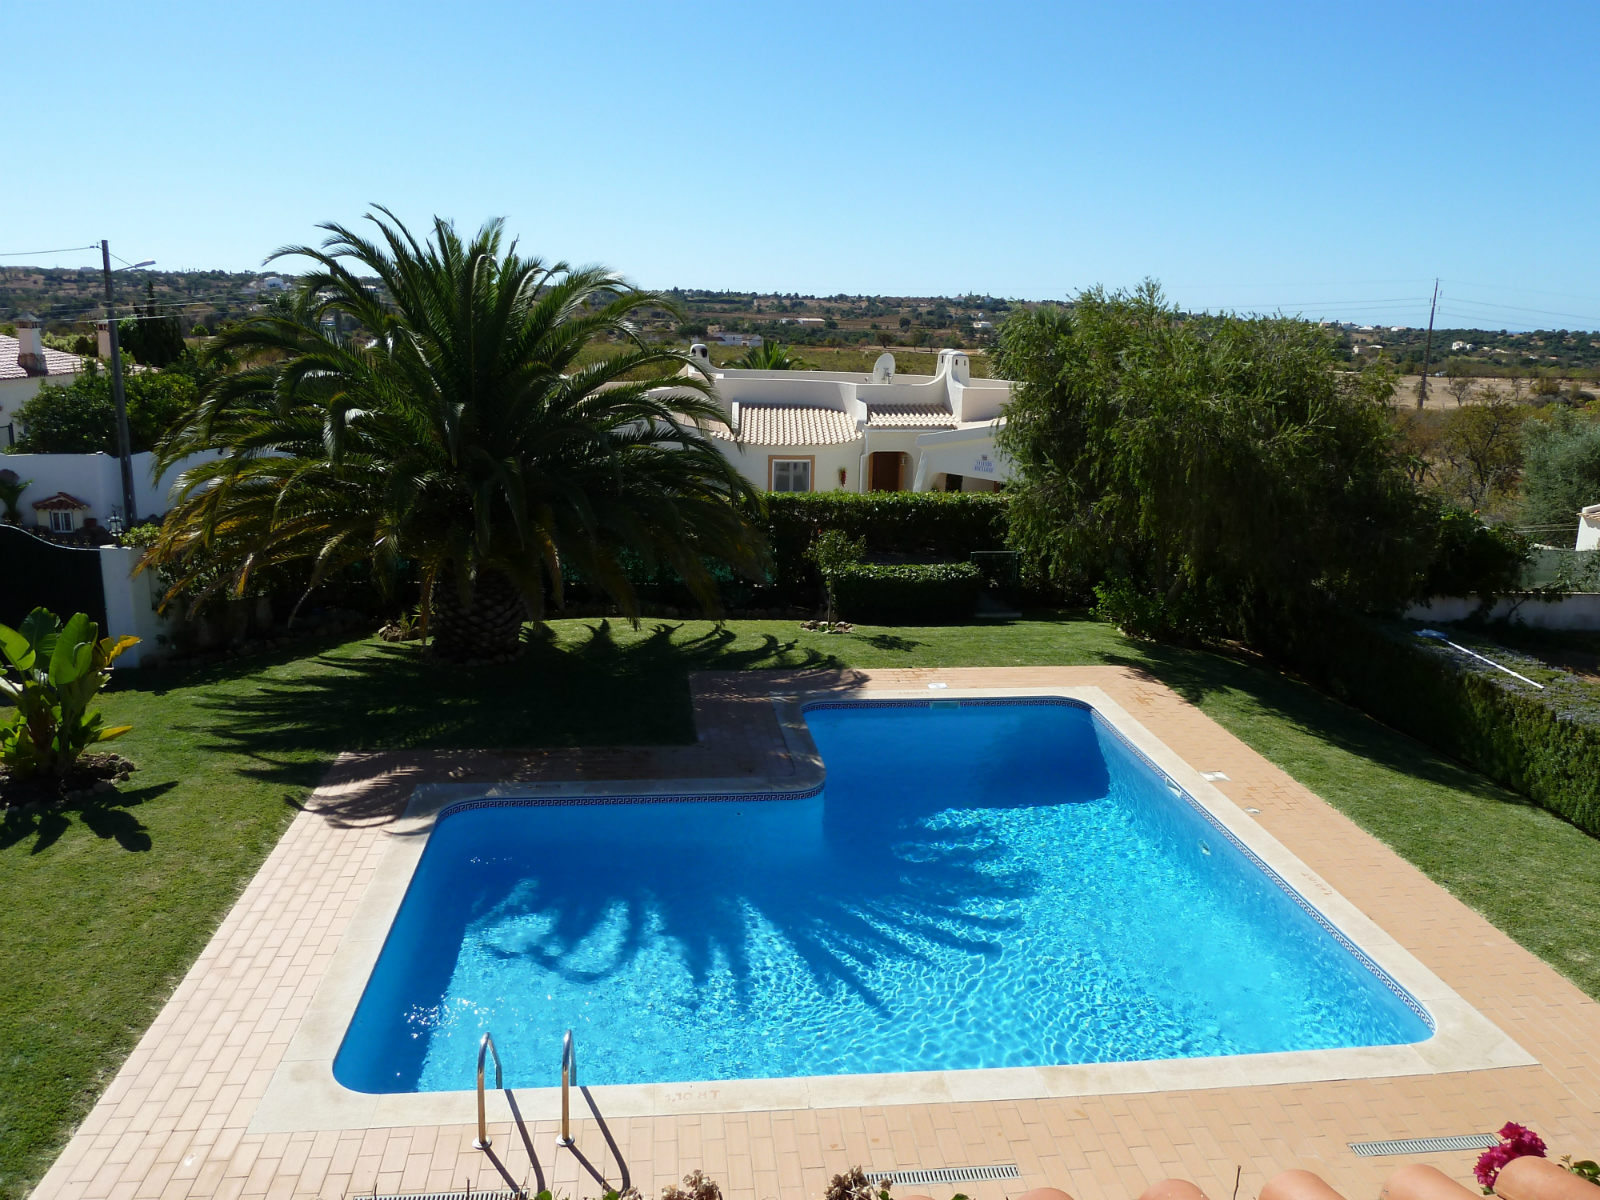 Villa's superb location with country & sea views